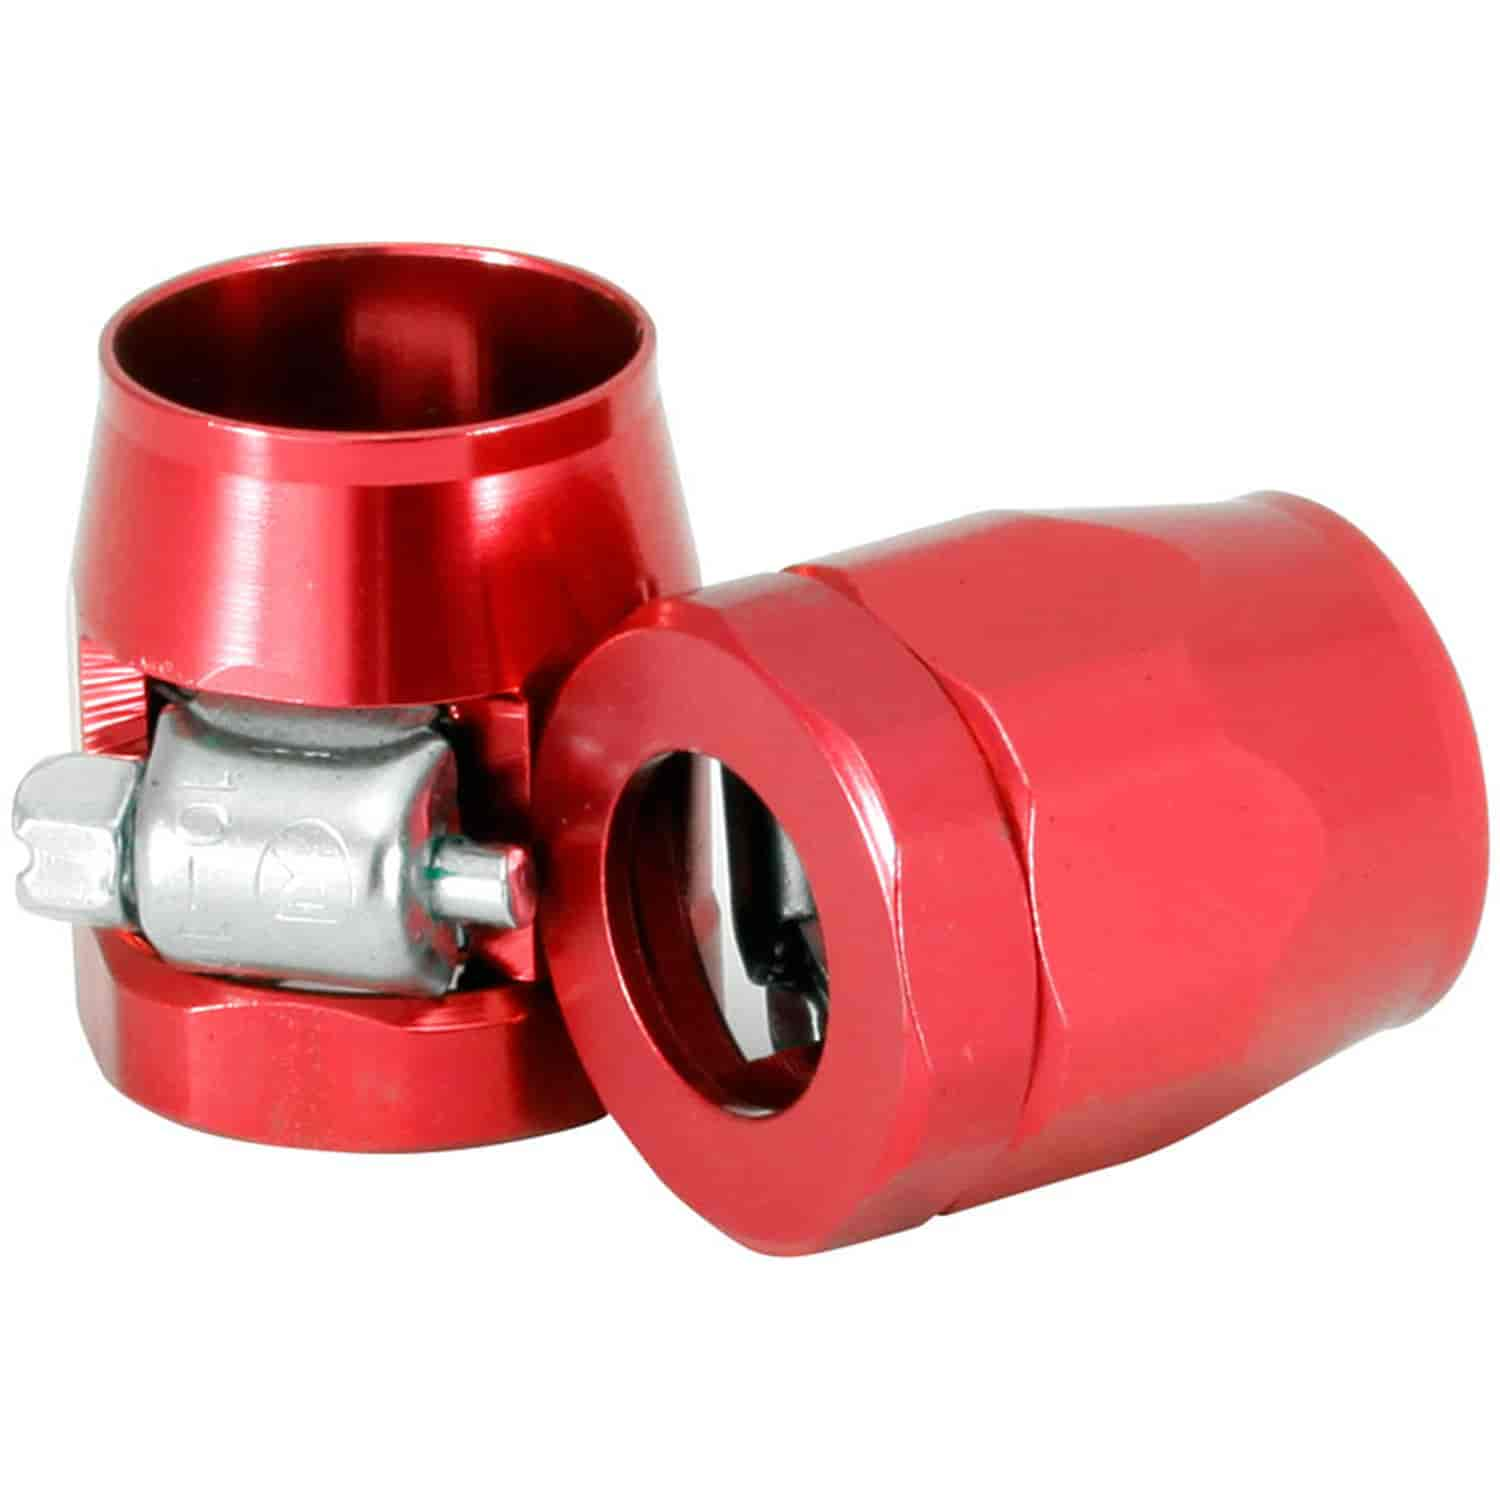 Spectre 2262 - Spectre Magna-Clamp Hose Fittings